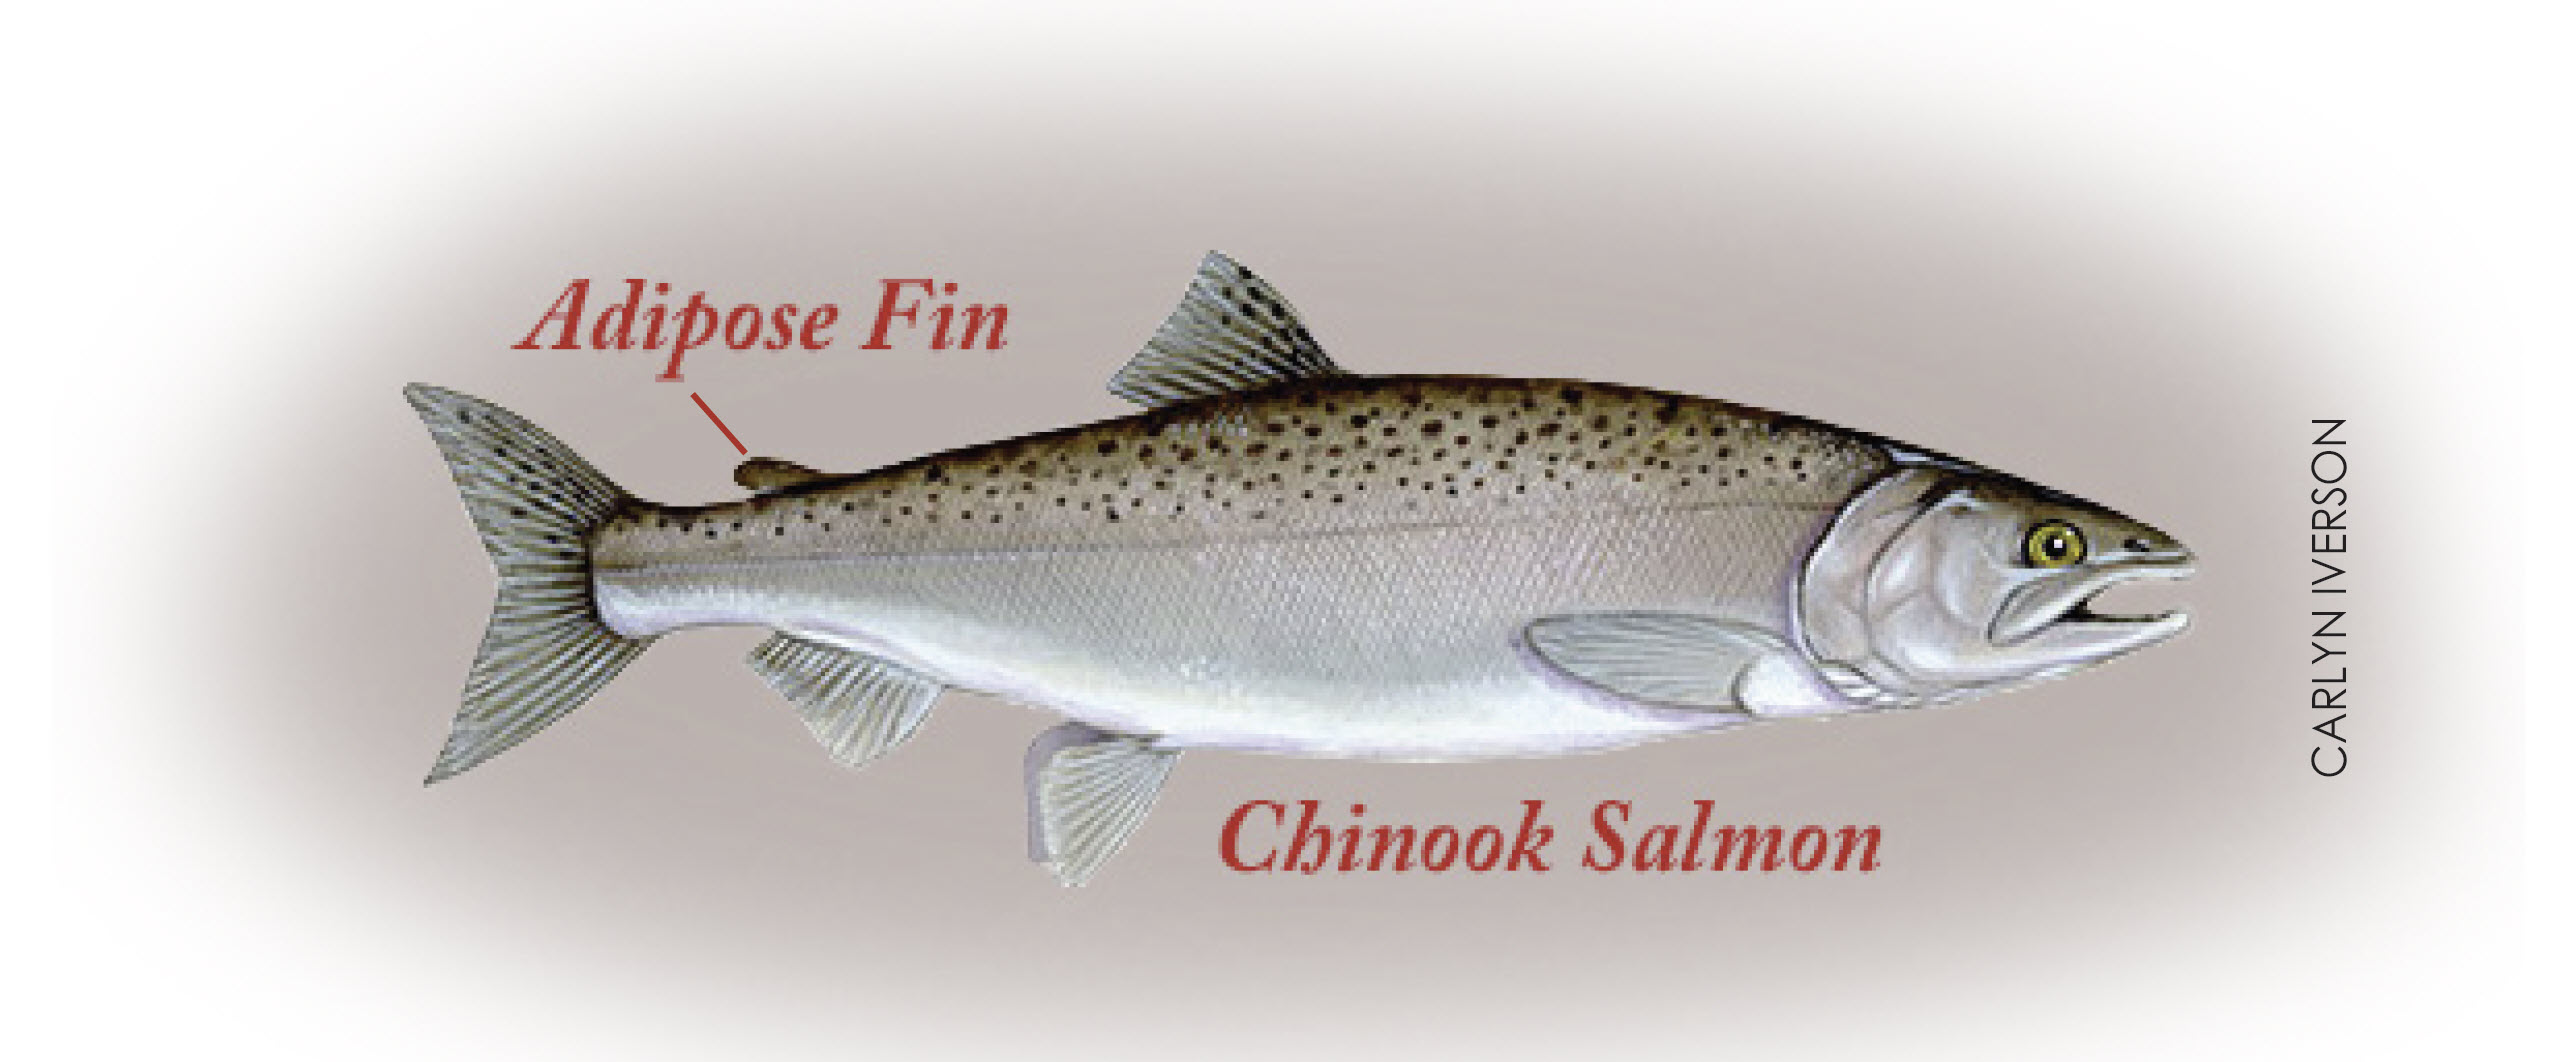 Drawing showing salmon adipose fin